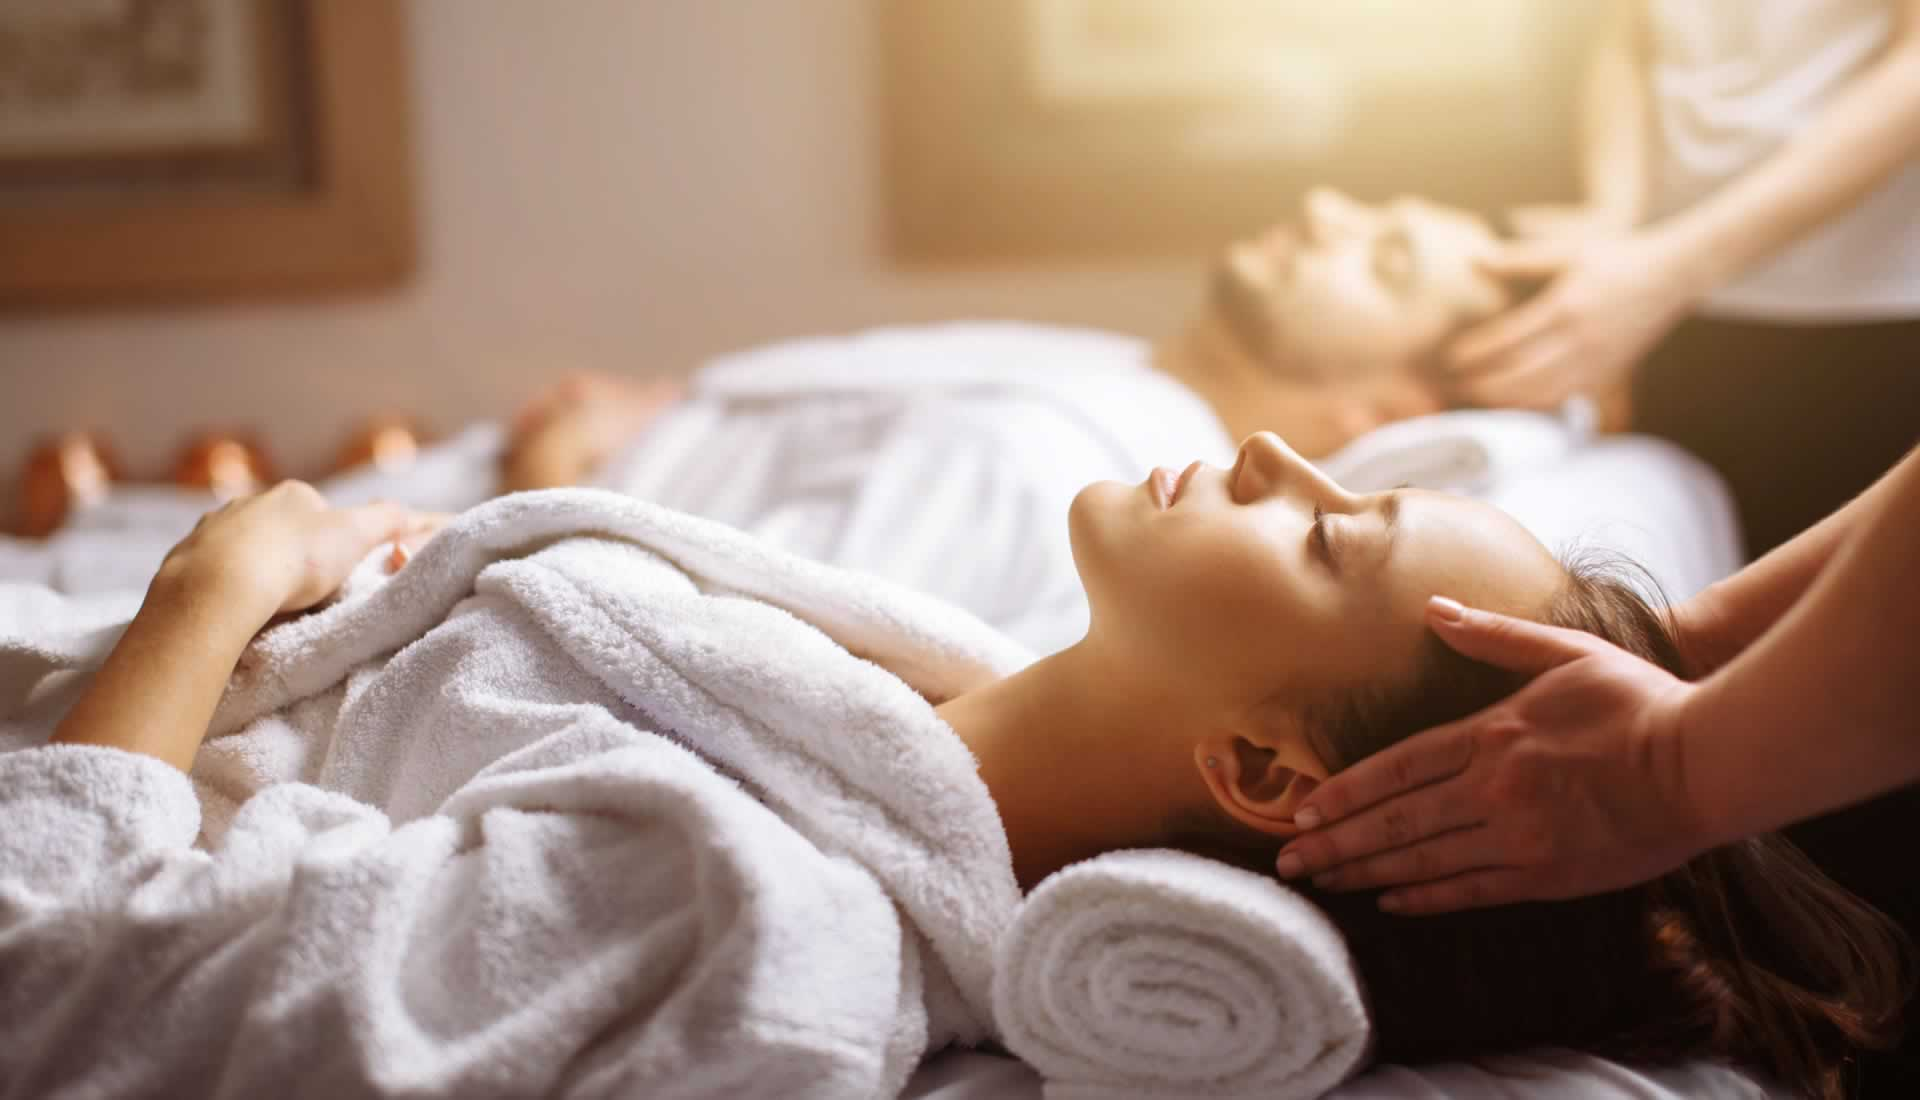 Couples Massage is perfect to treat yourself and a partner to a relaxing and intimate couples massage. We come to your home with massage table, linens, candles, music and oil. This is ideal for a birthday gift, wedding gift, anniversary gift, mothers day gift, or for any special occasion.